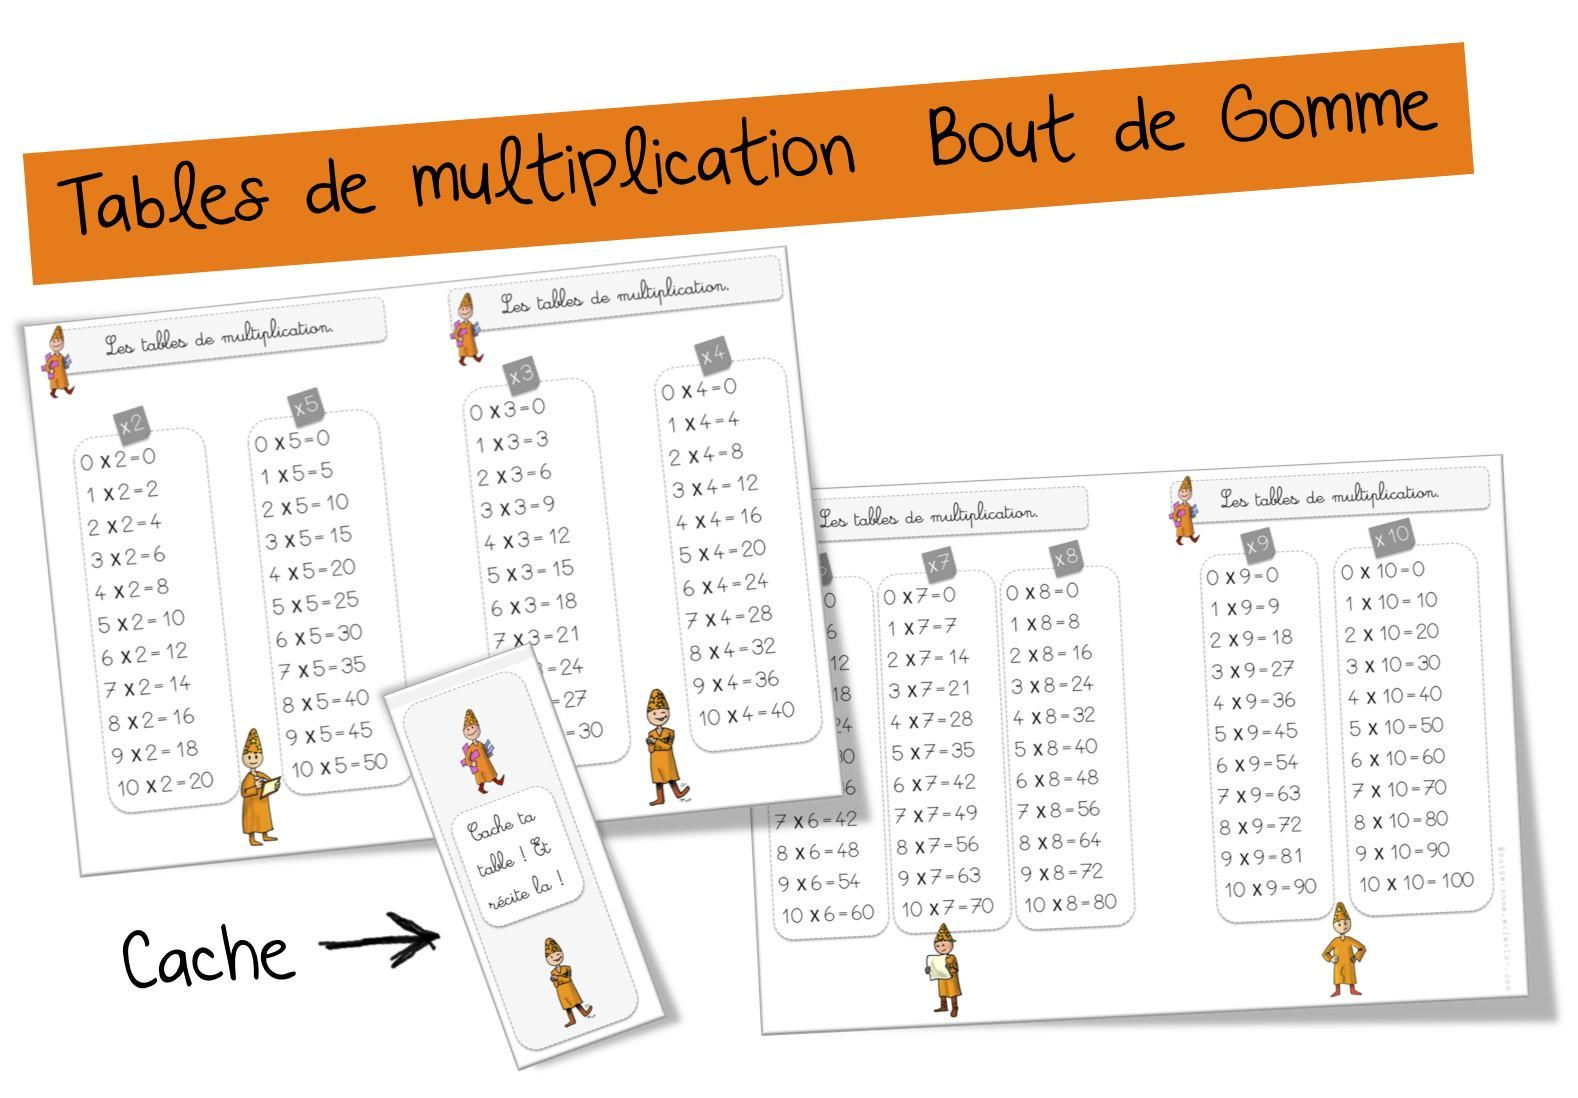 Exercice table multiplication 1 2 3 4 5 coloriages magiquesjeux les tables de multiplication 2 - Table de multiplication par 4 ...